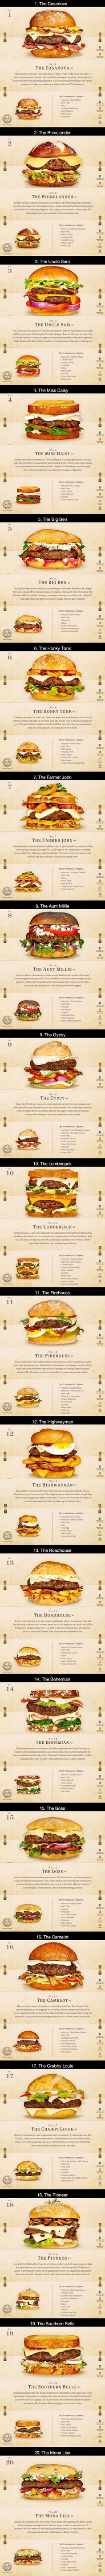 Glorious burger combinations pt.1